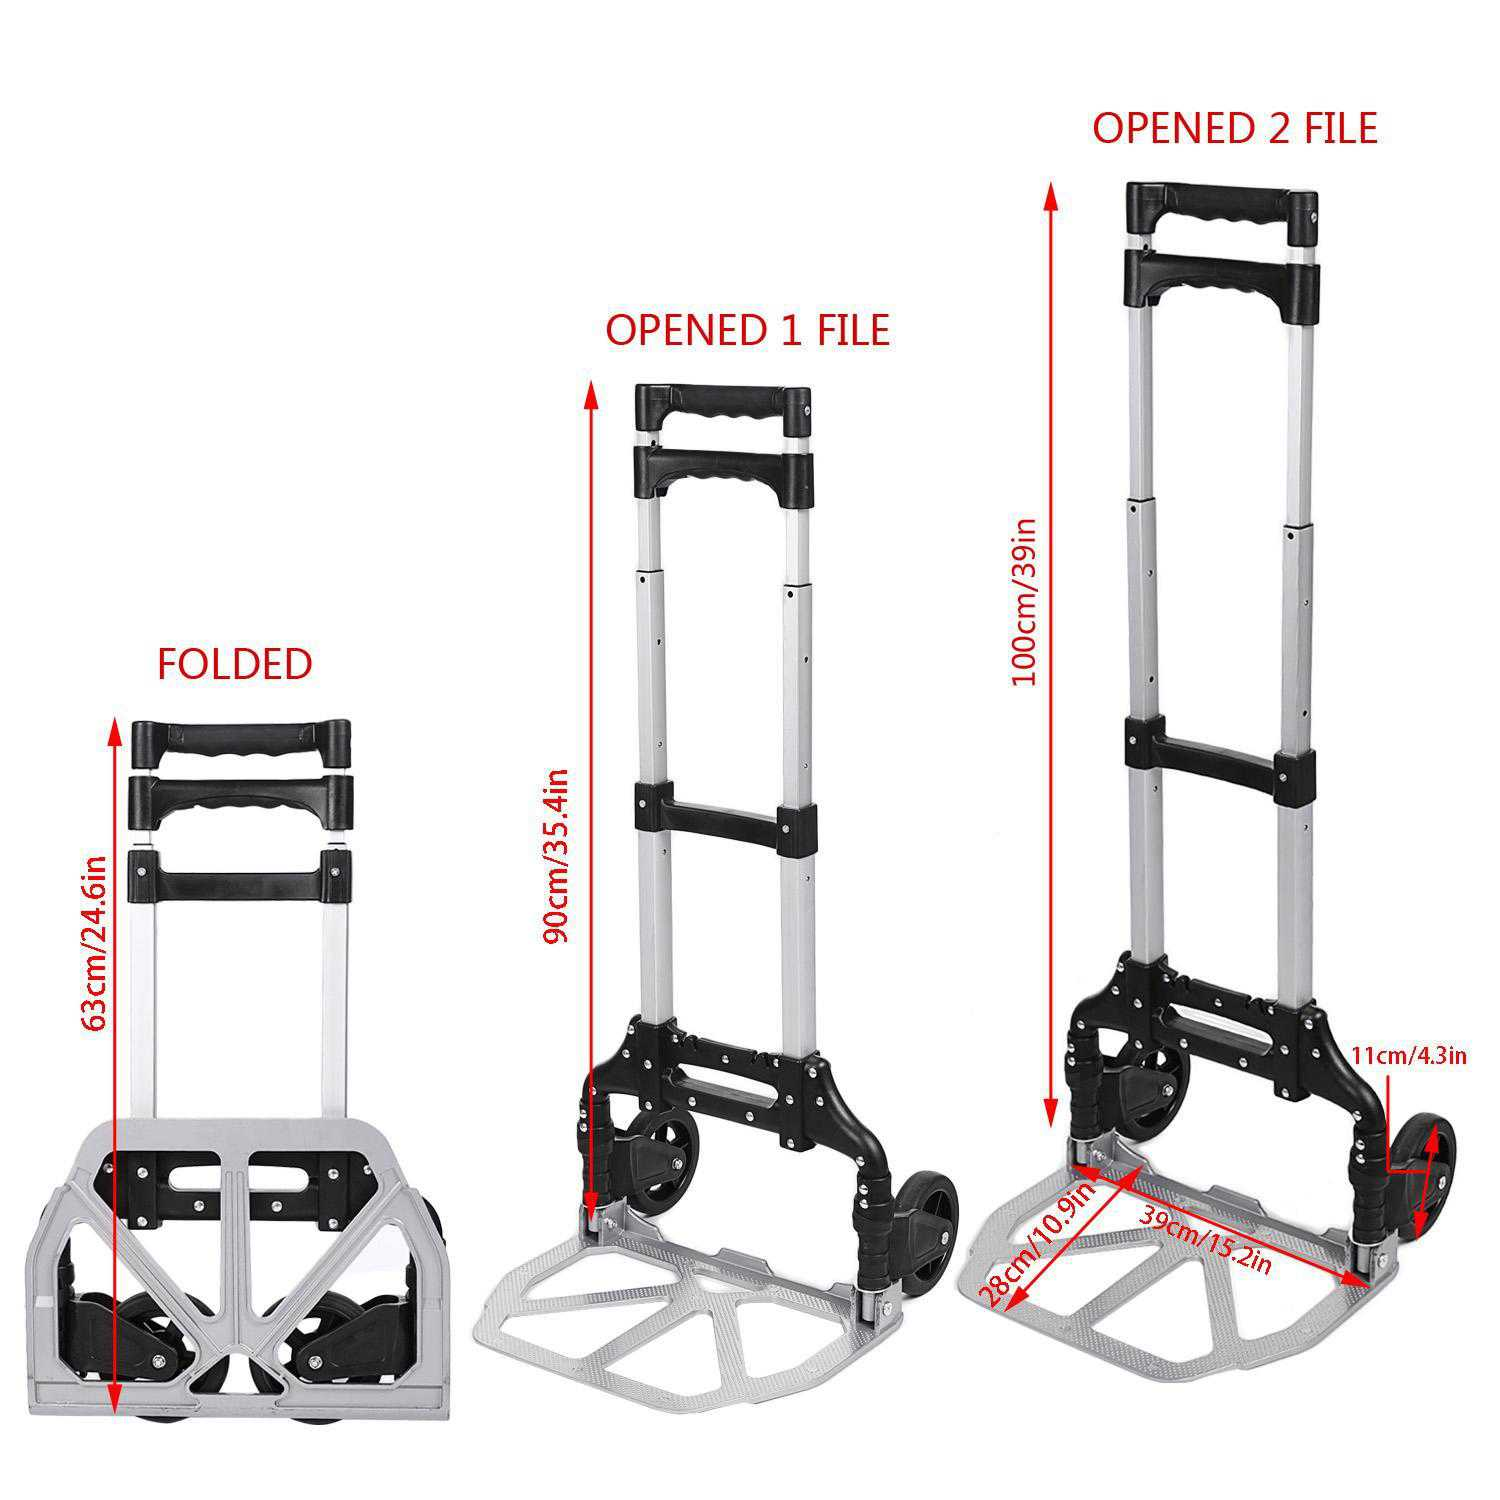 Telescoping Portable Folding Hand Truck Dolly Luggage Carts PAGACAT